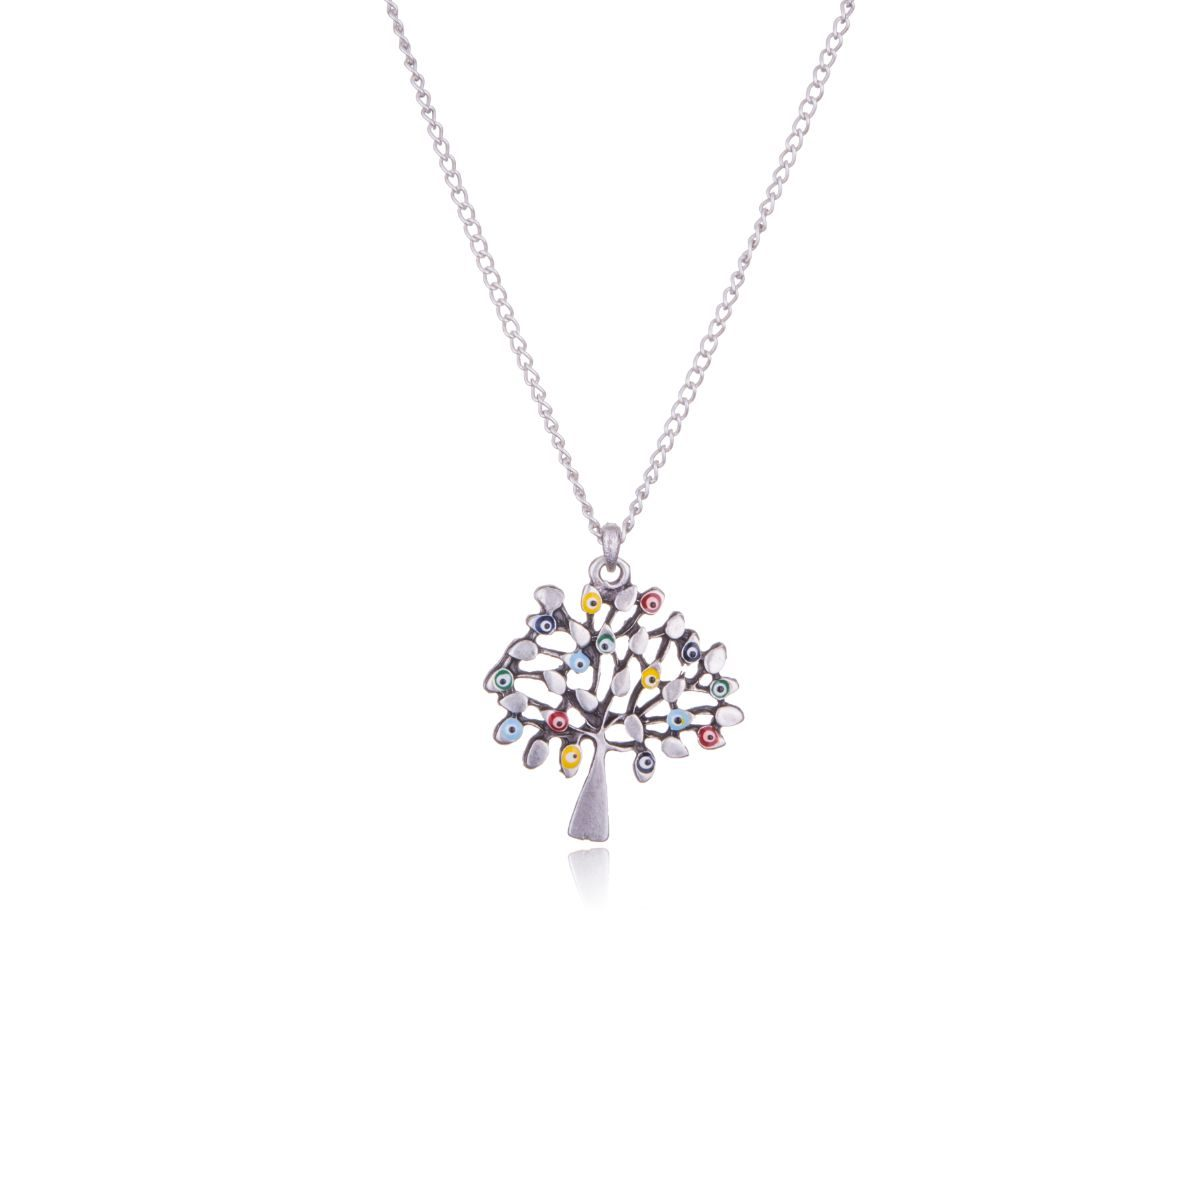 Athena short necklace in silver zamak with a tree-shaped pendant with some of its colored enameled leaves